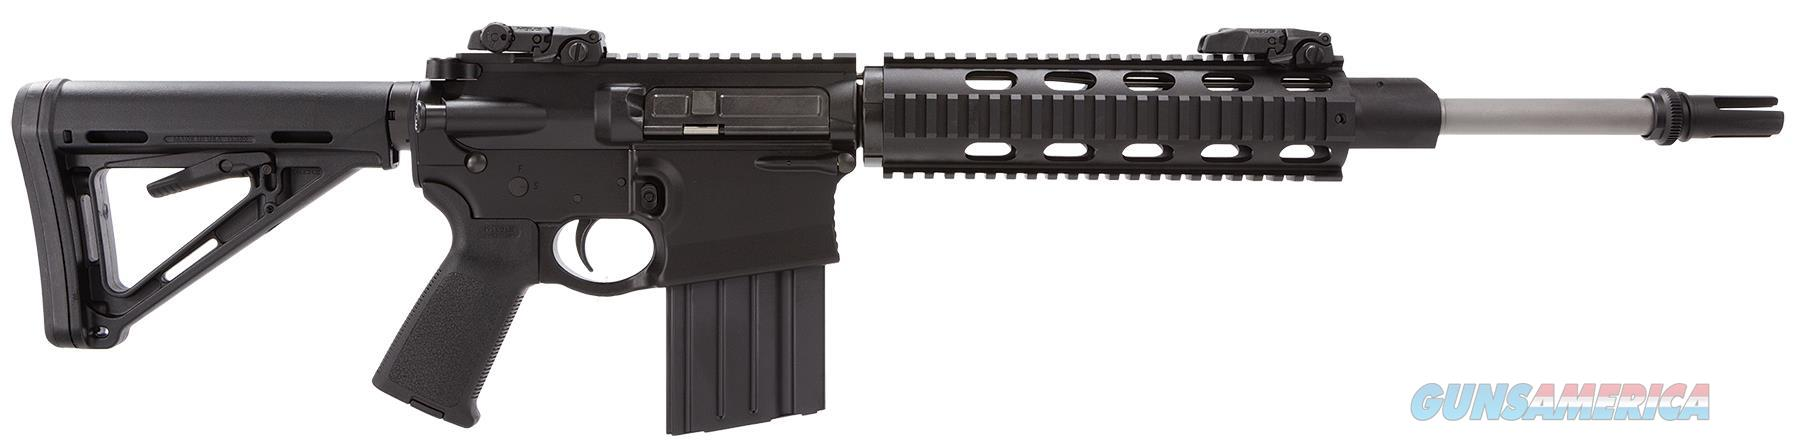 "DPMSPANTHER ARMS G2 RECON 308/16"" 1-20RD BK 60222  Guns > Rifles > DPMS - Panther Arms > Complete Rifle"